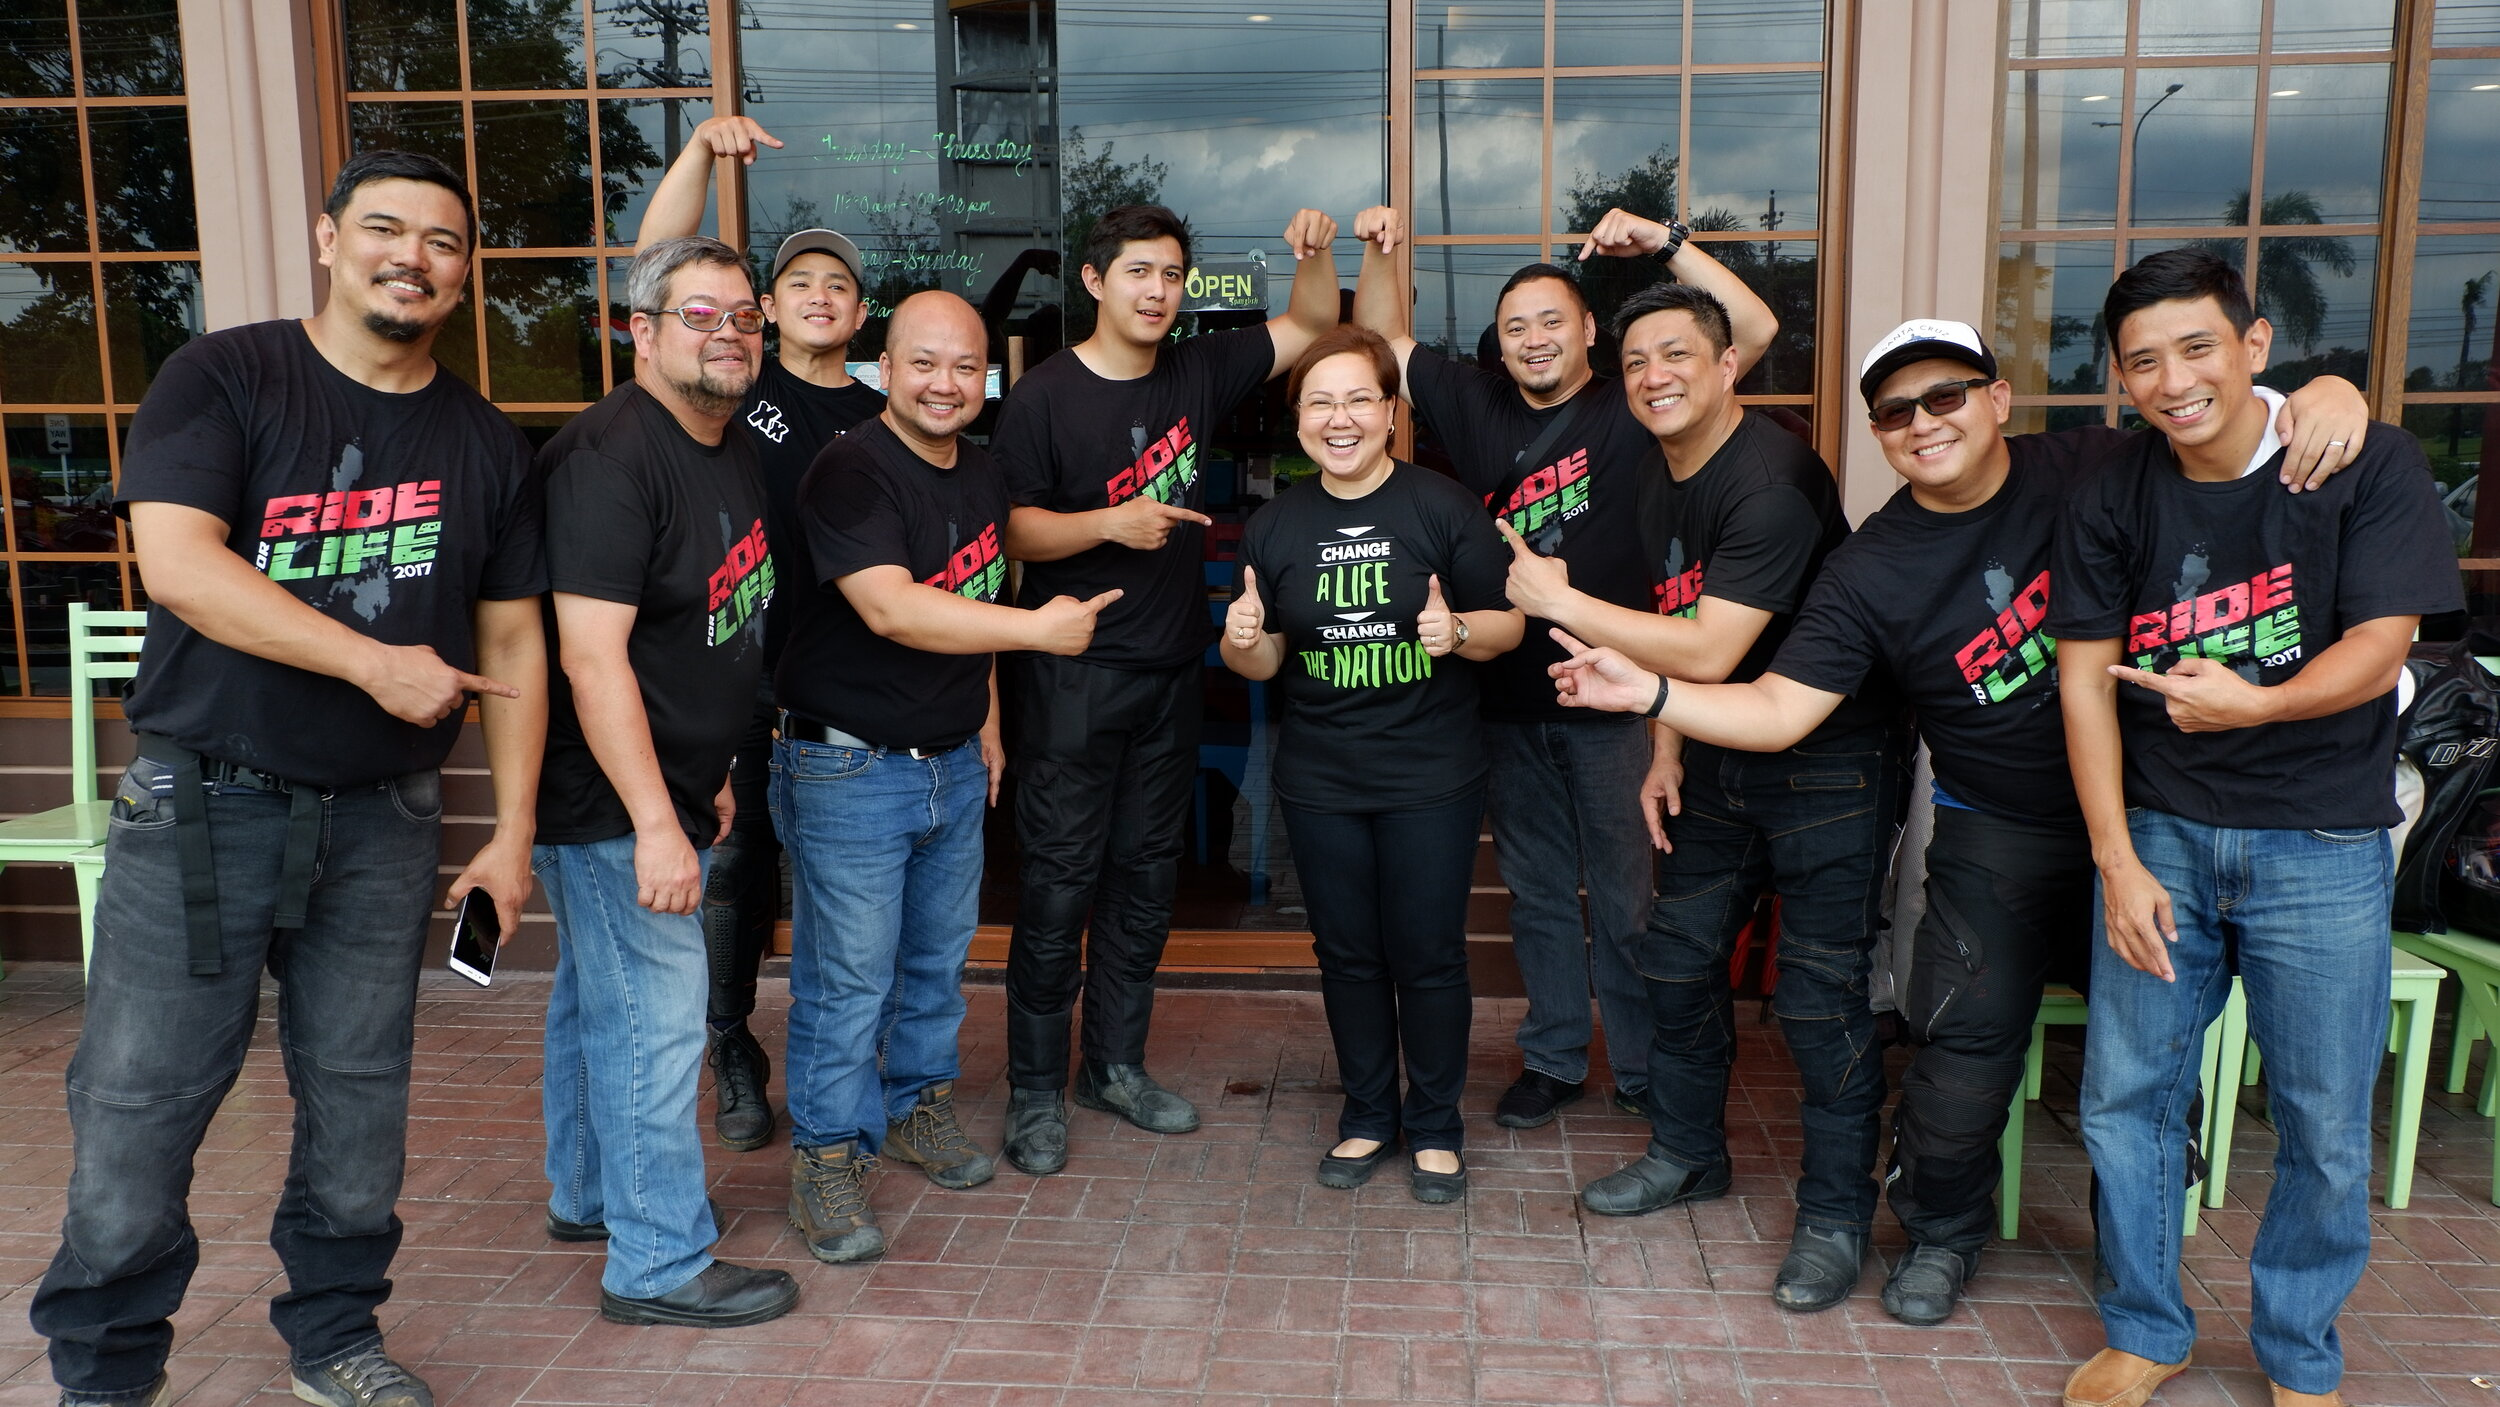 The Ride for LIFE 2017 team with Real LIFE Executive Director Mae Perez